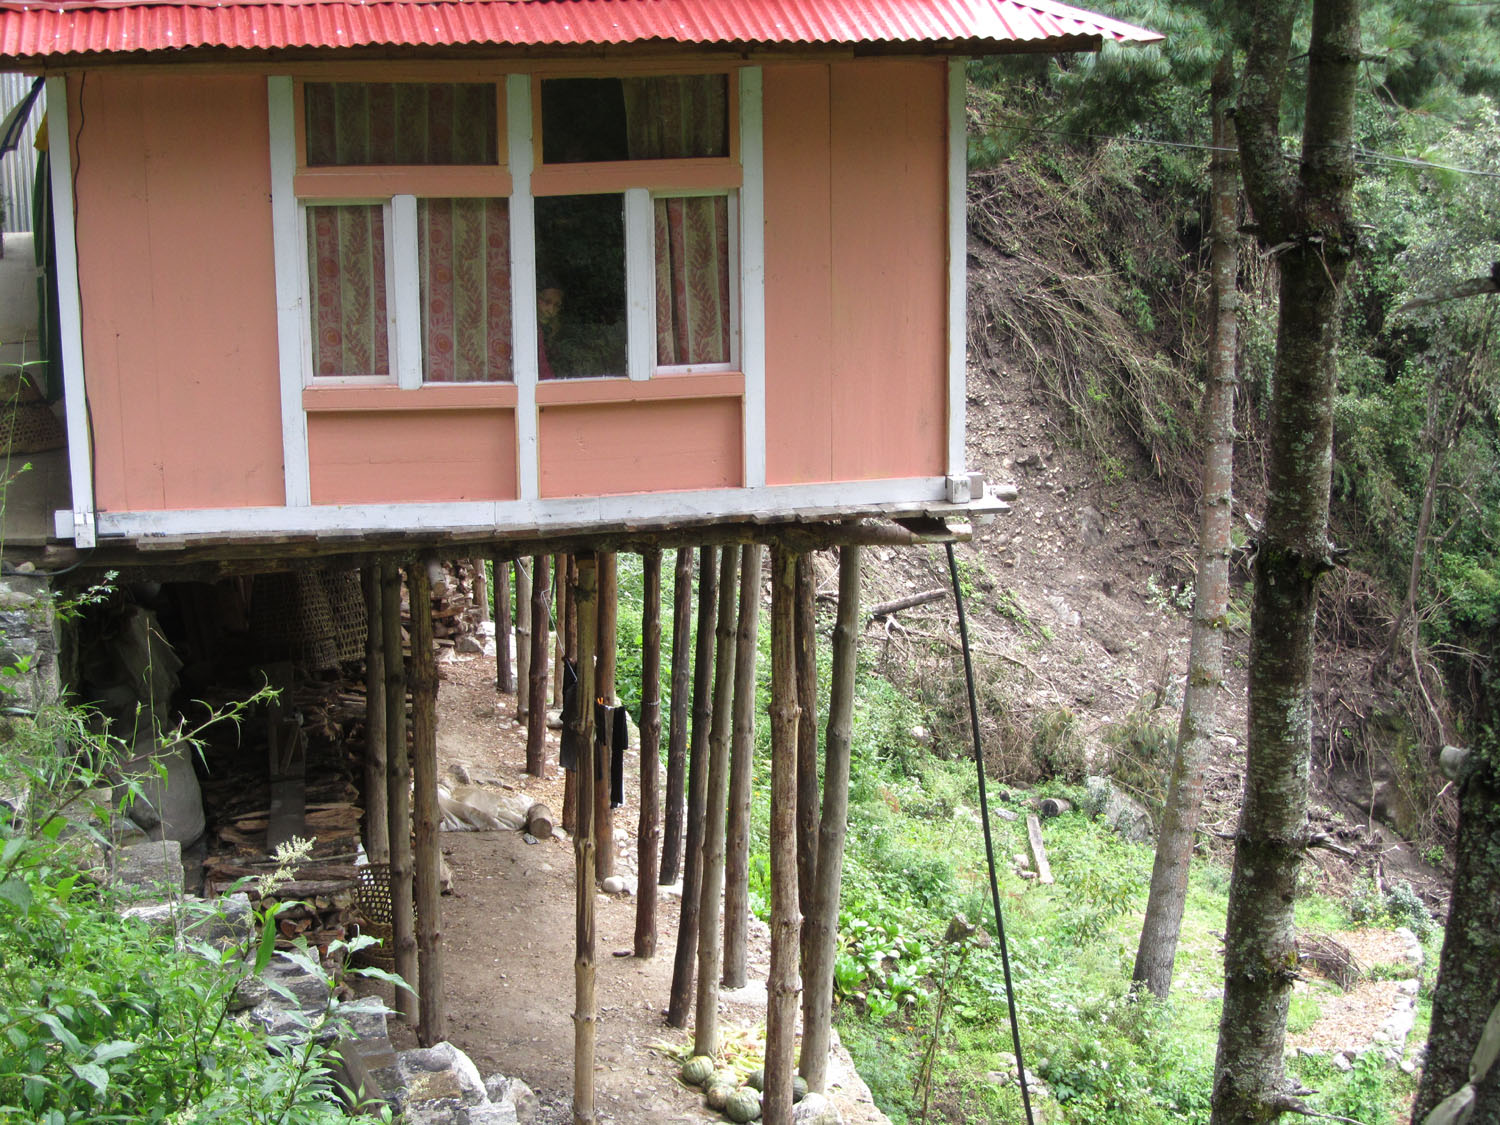 Nepal-Everest-Region-Trek-Day-01-House-Stilts